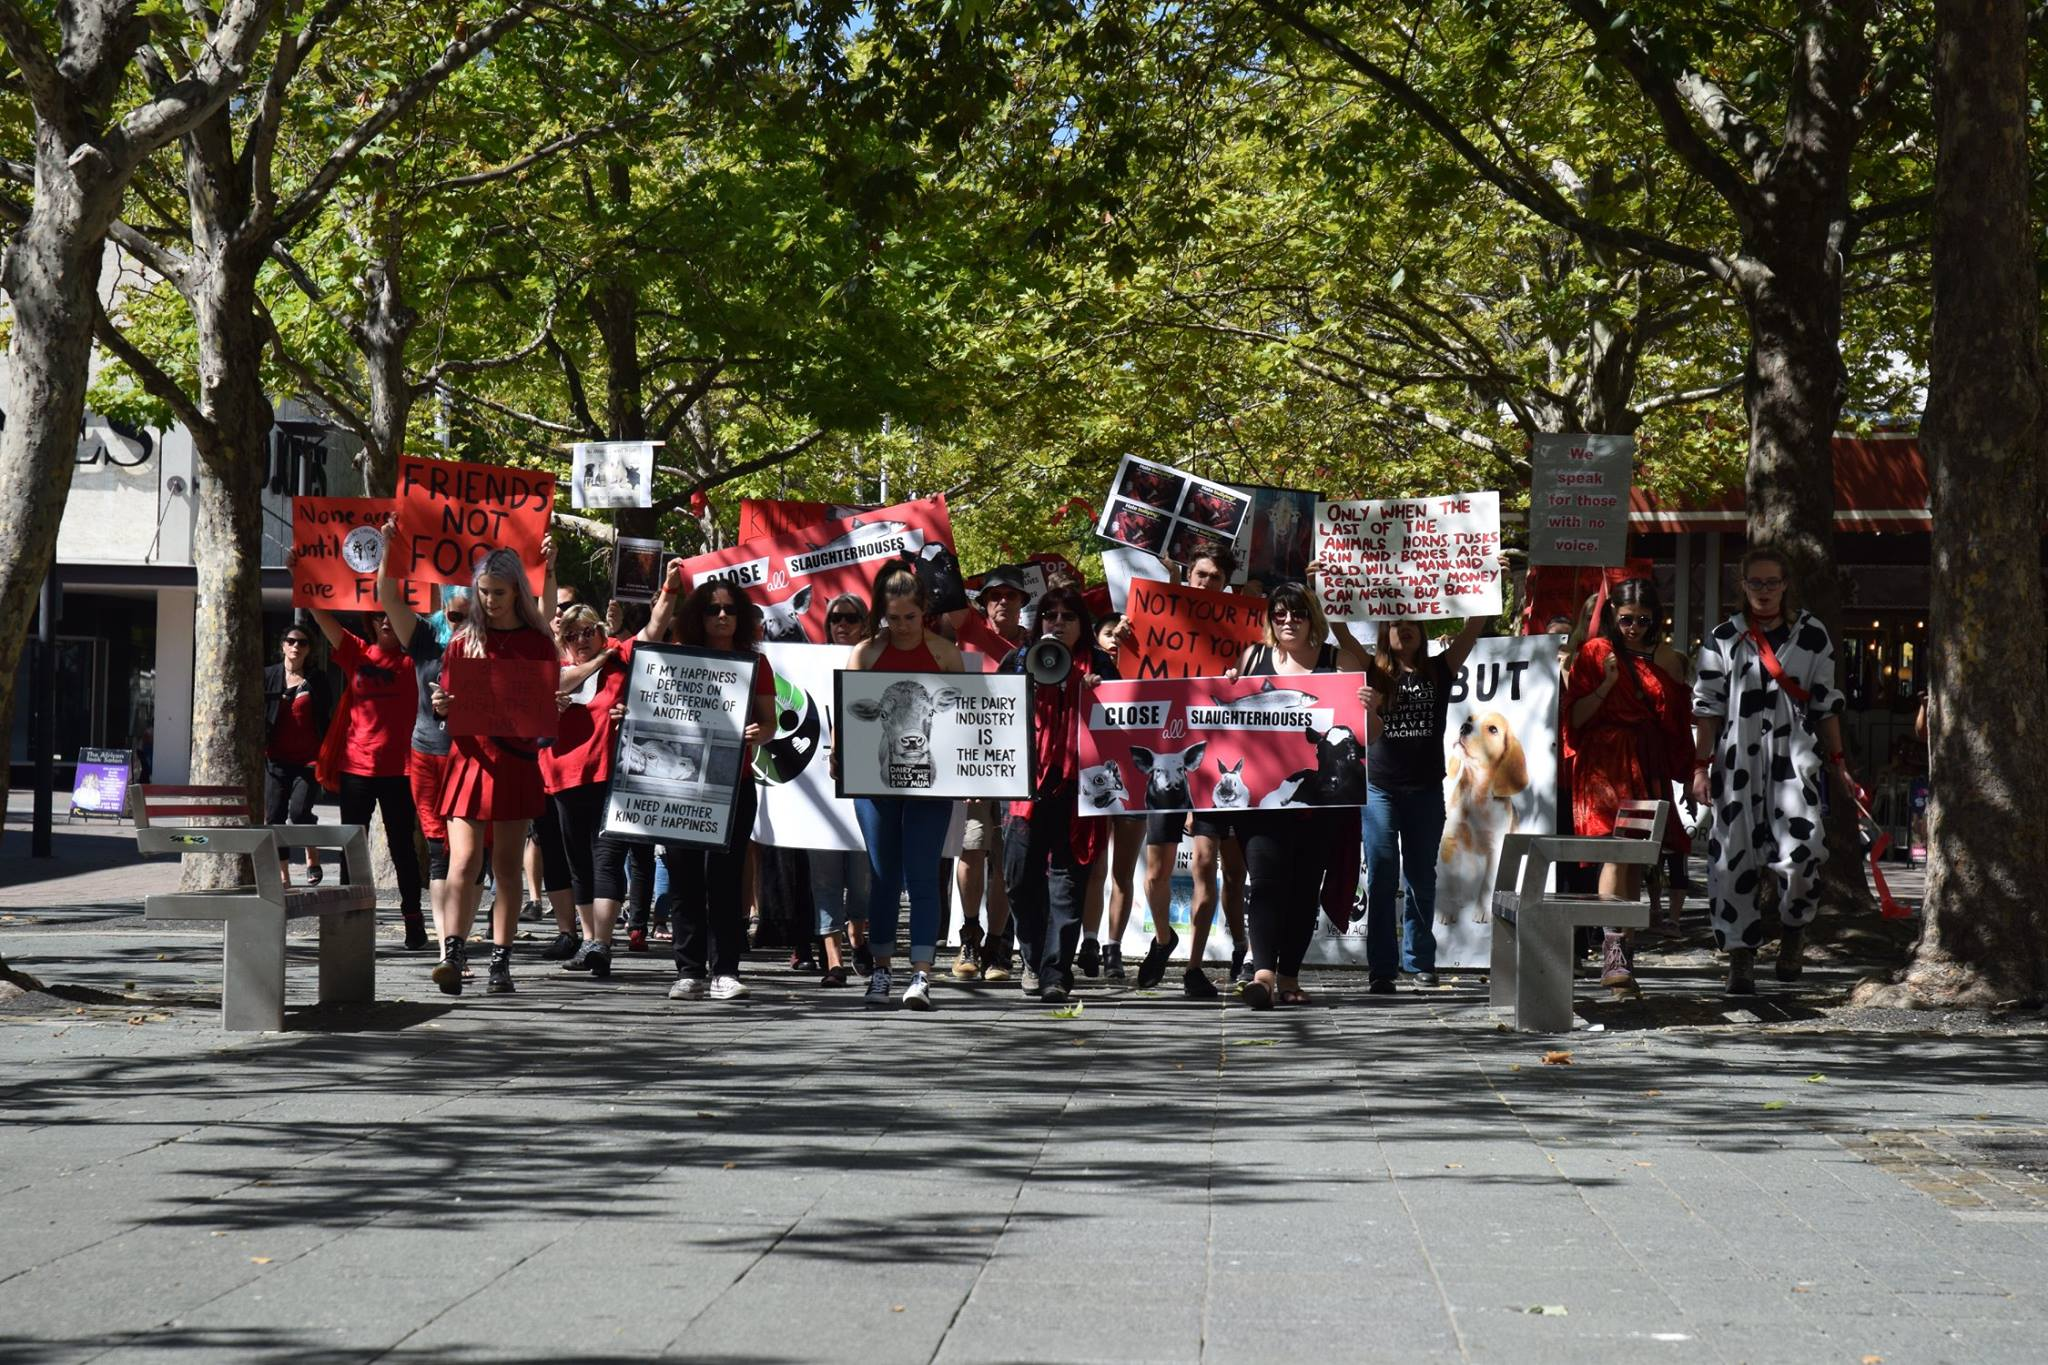 Canberra March To Close All Slaughterhouses 2017 picture